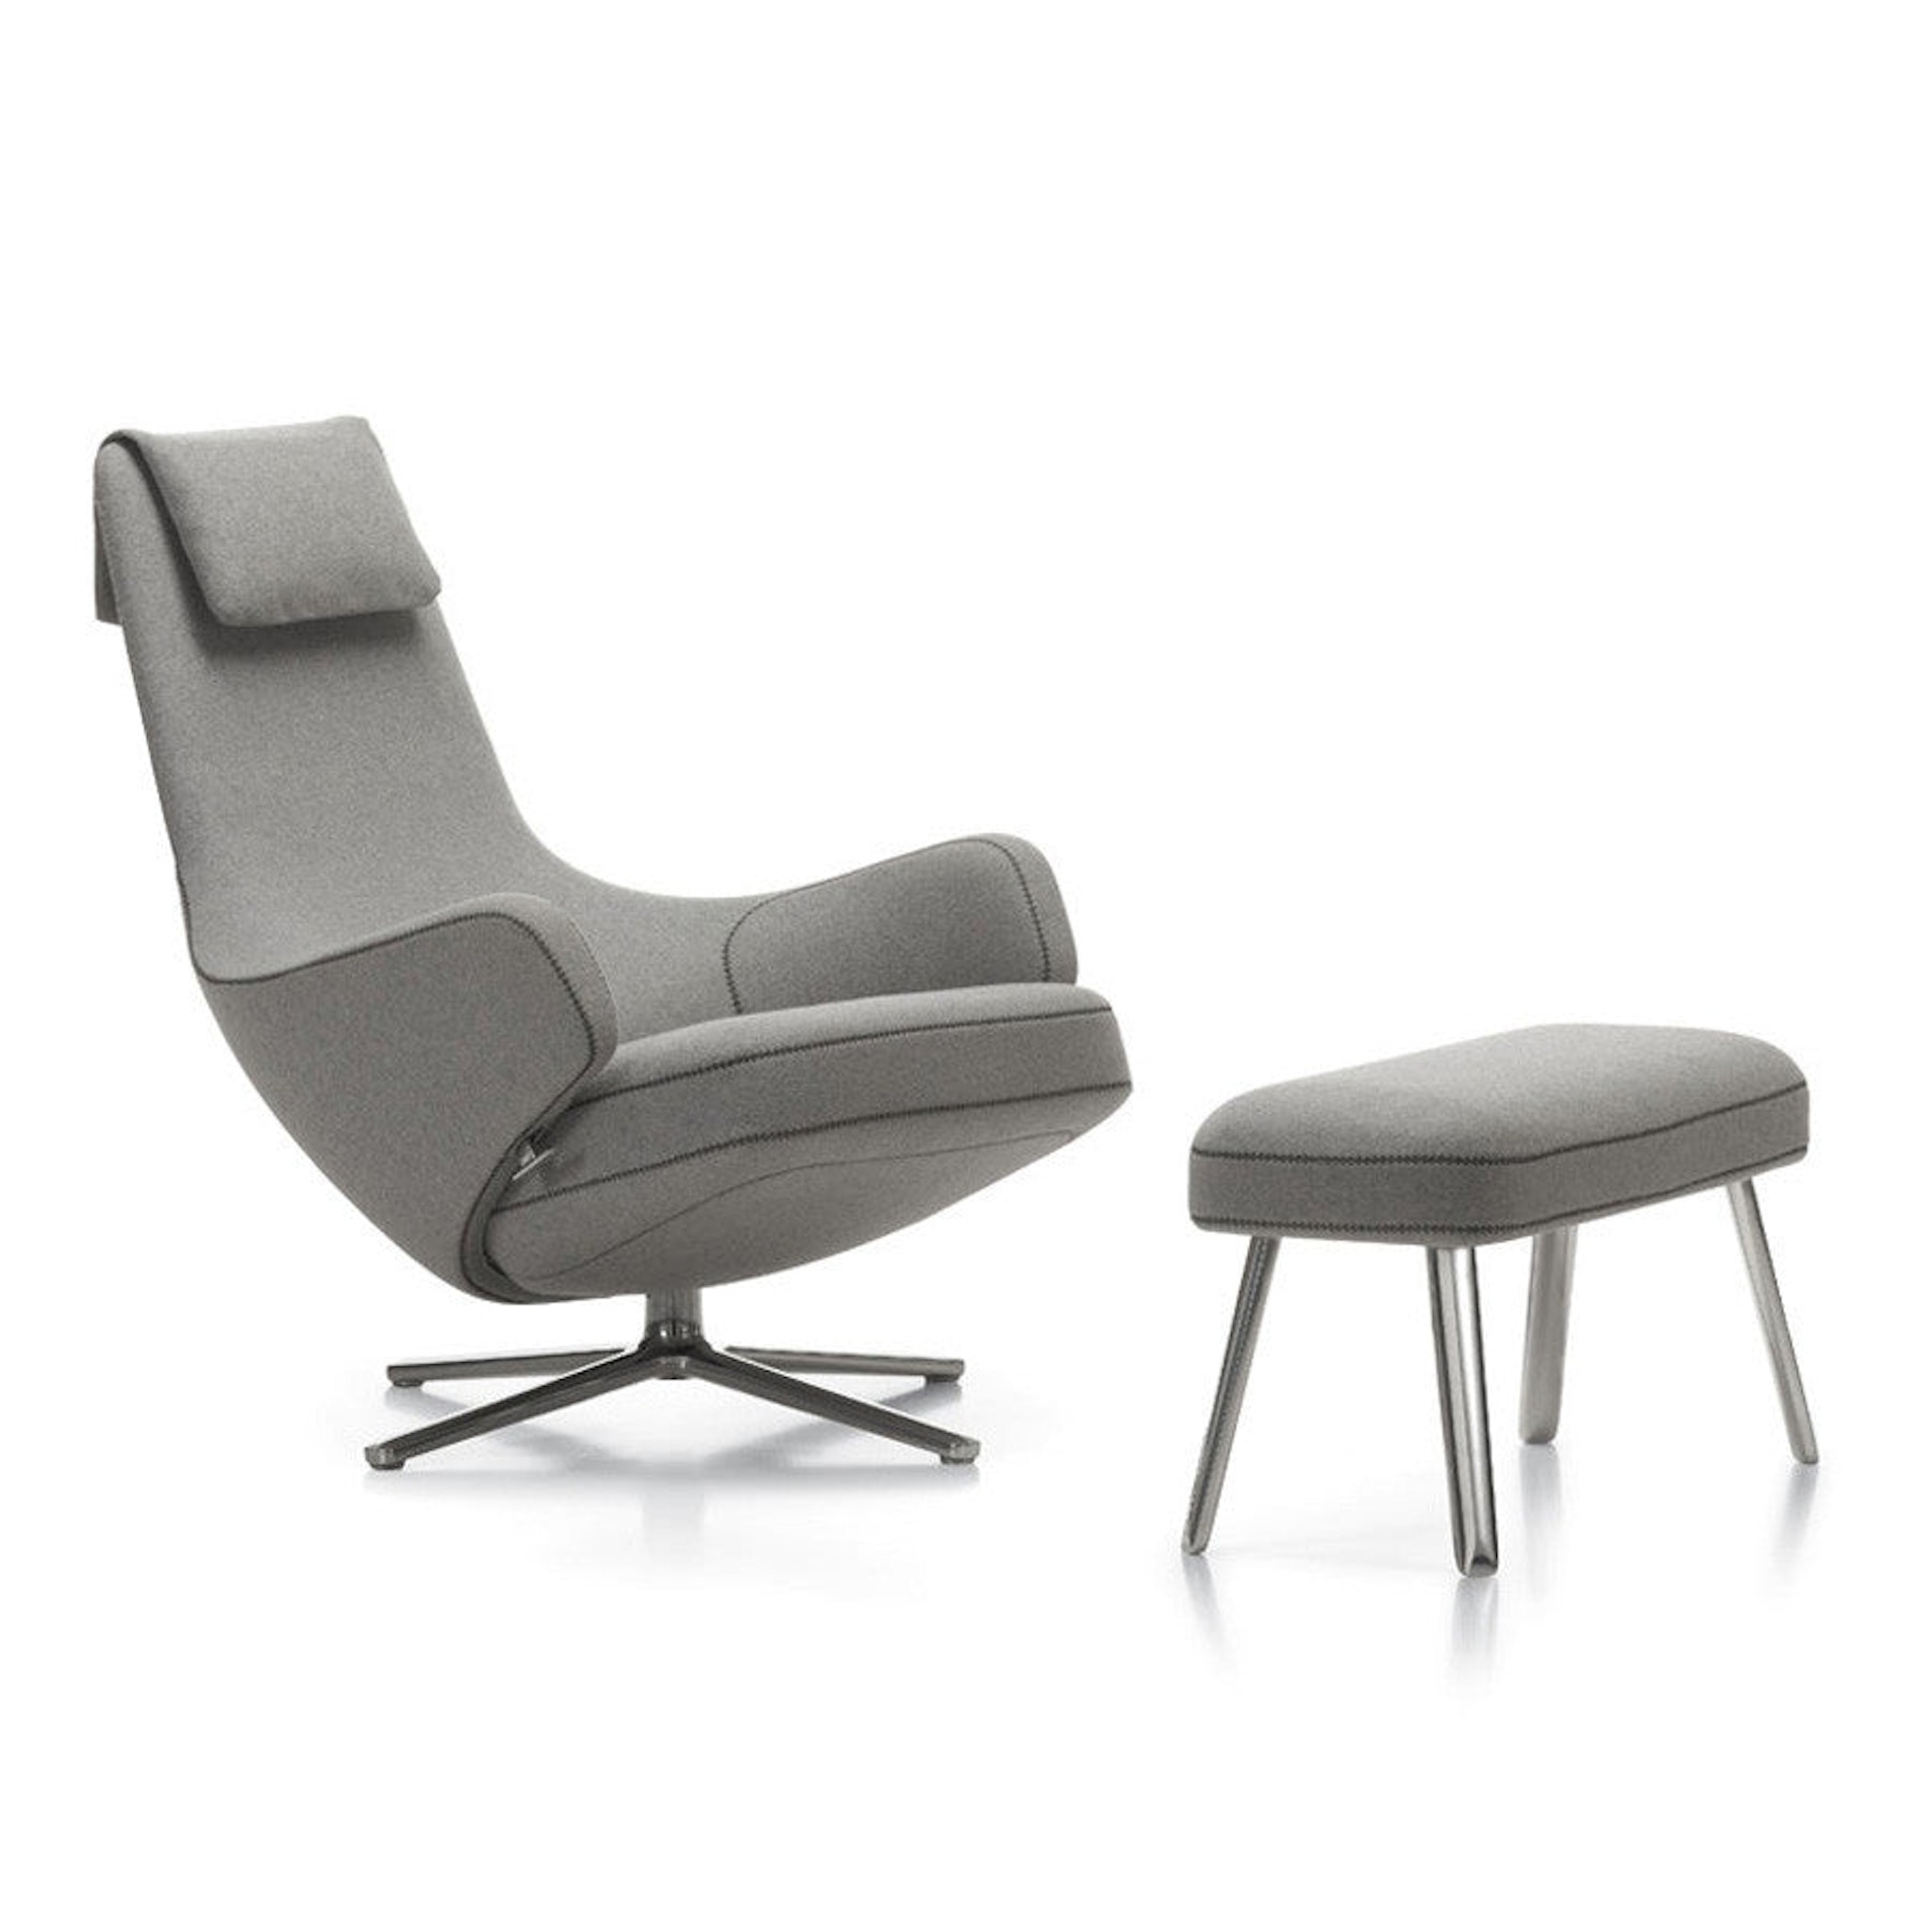 Repos by Antonio Citterio for Vitra